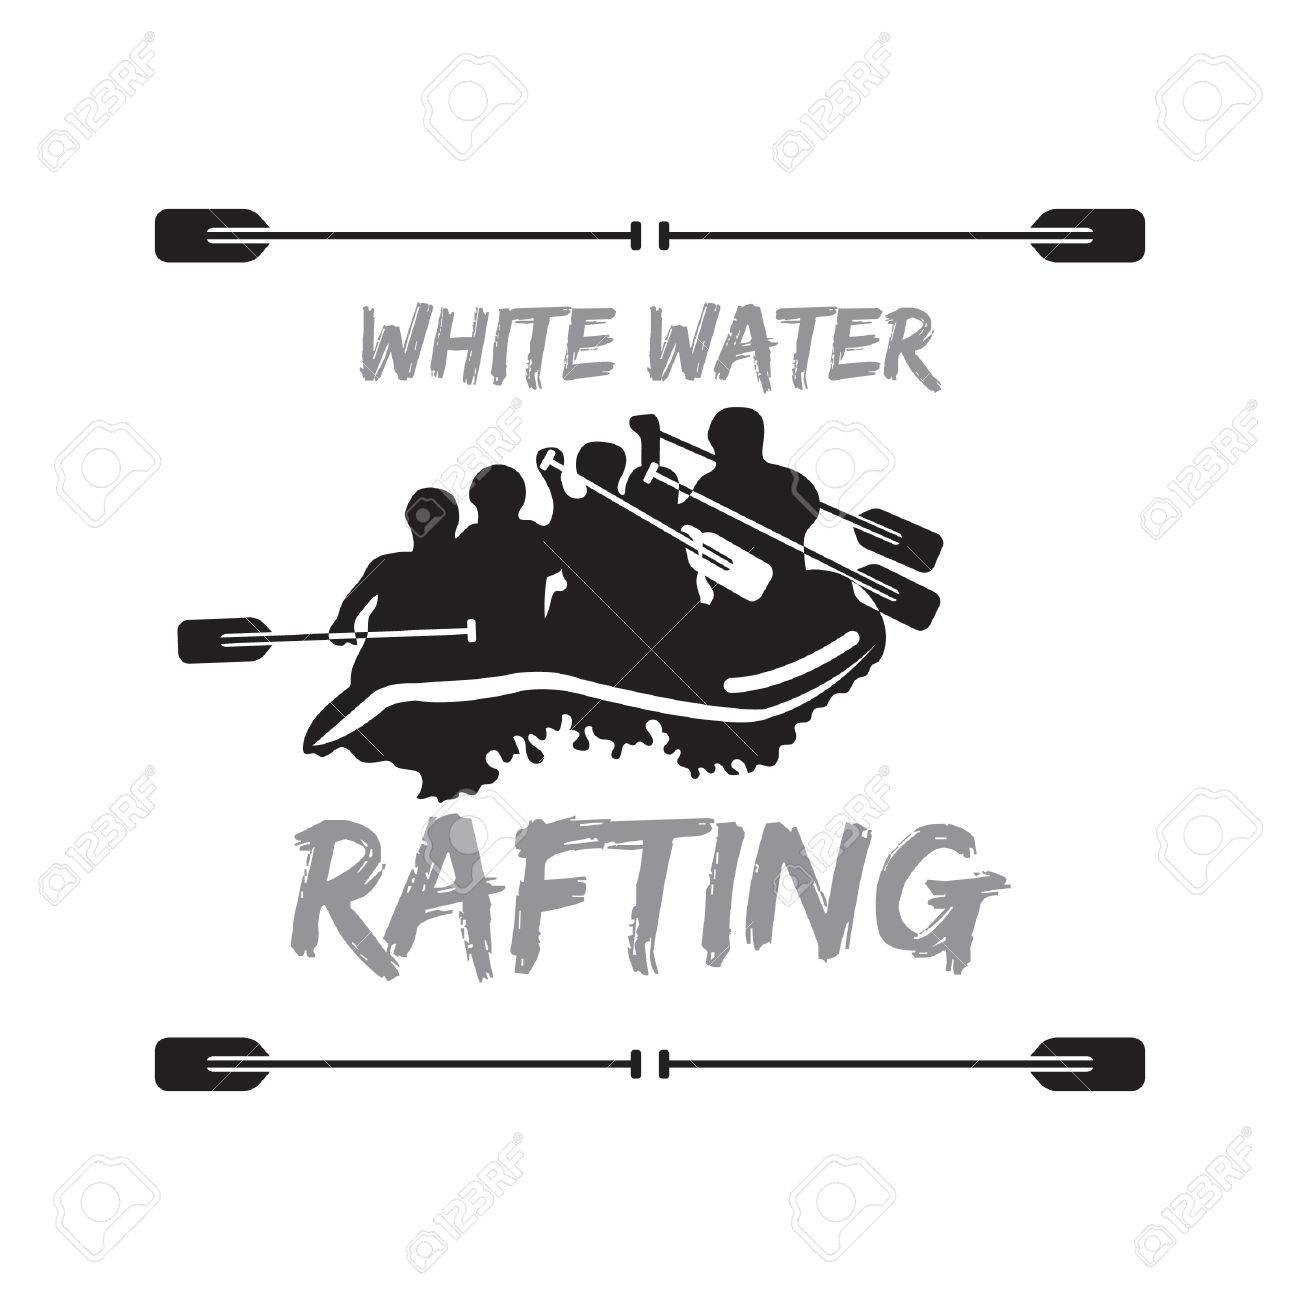 430 White Water Rafting Stock Illustrations Cliparts And Royalty